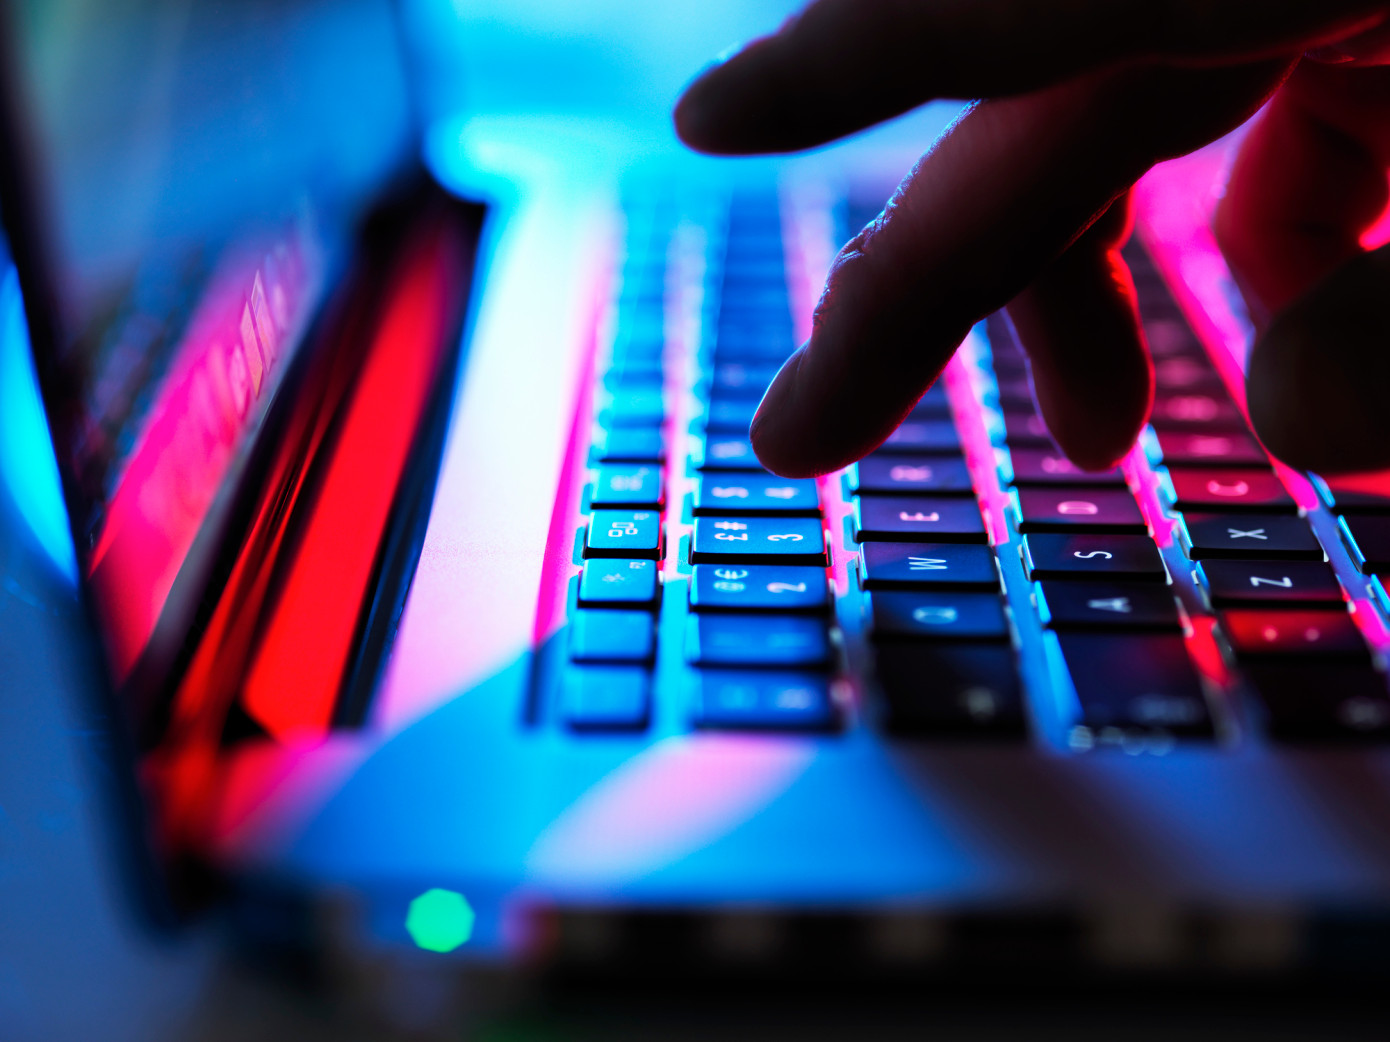 Over 15 BILLION pieces of stolen data are now available on the dark web.